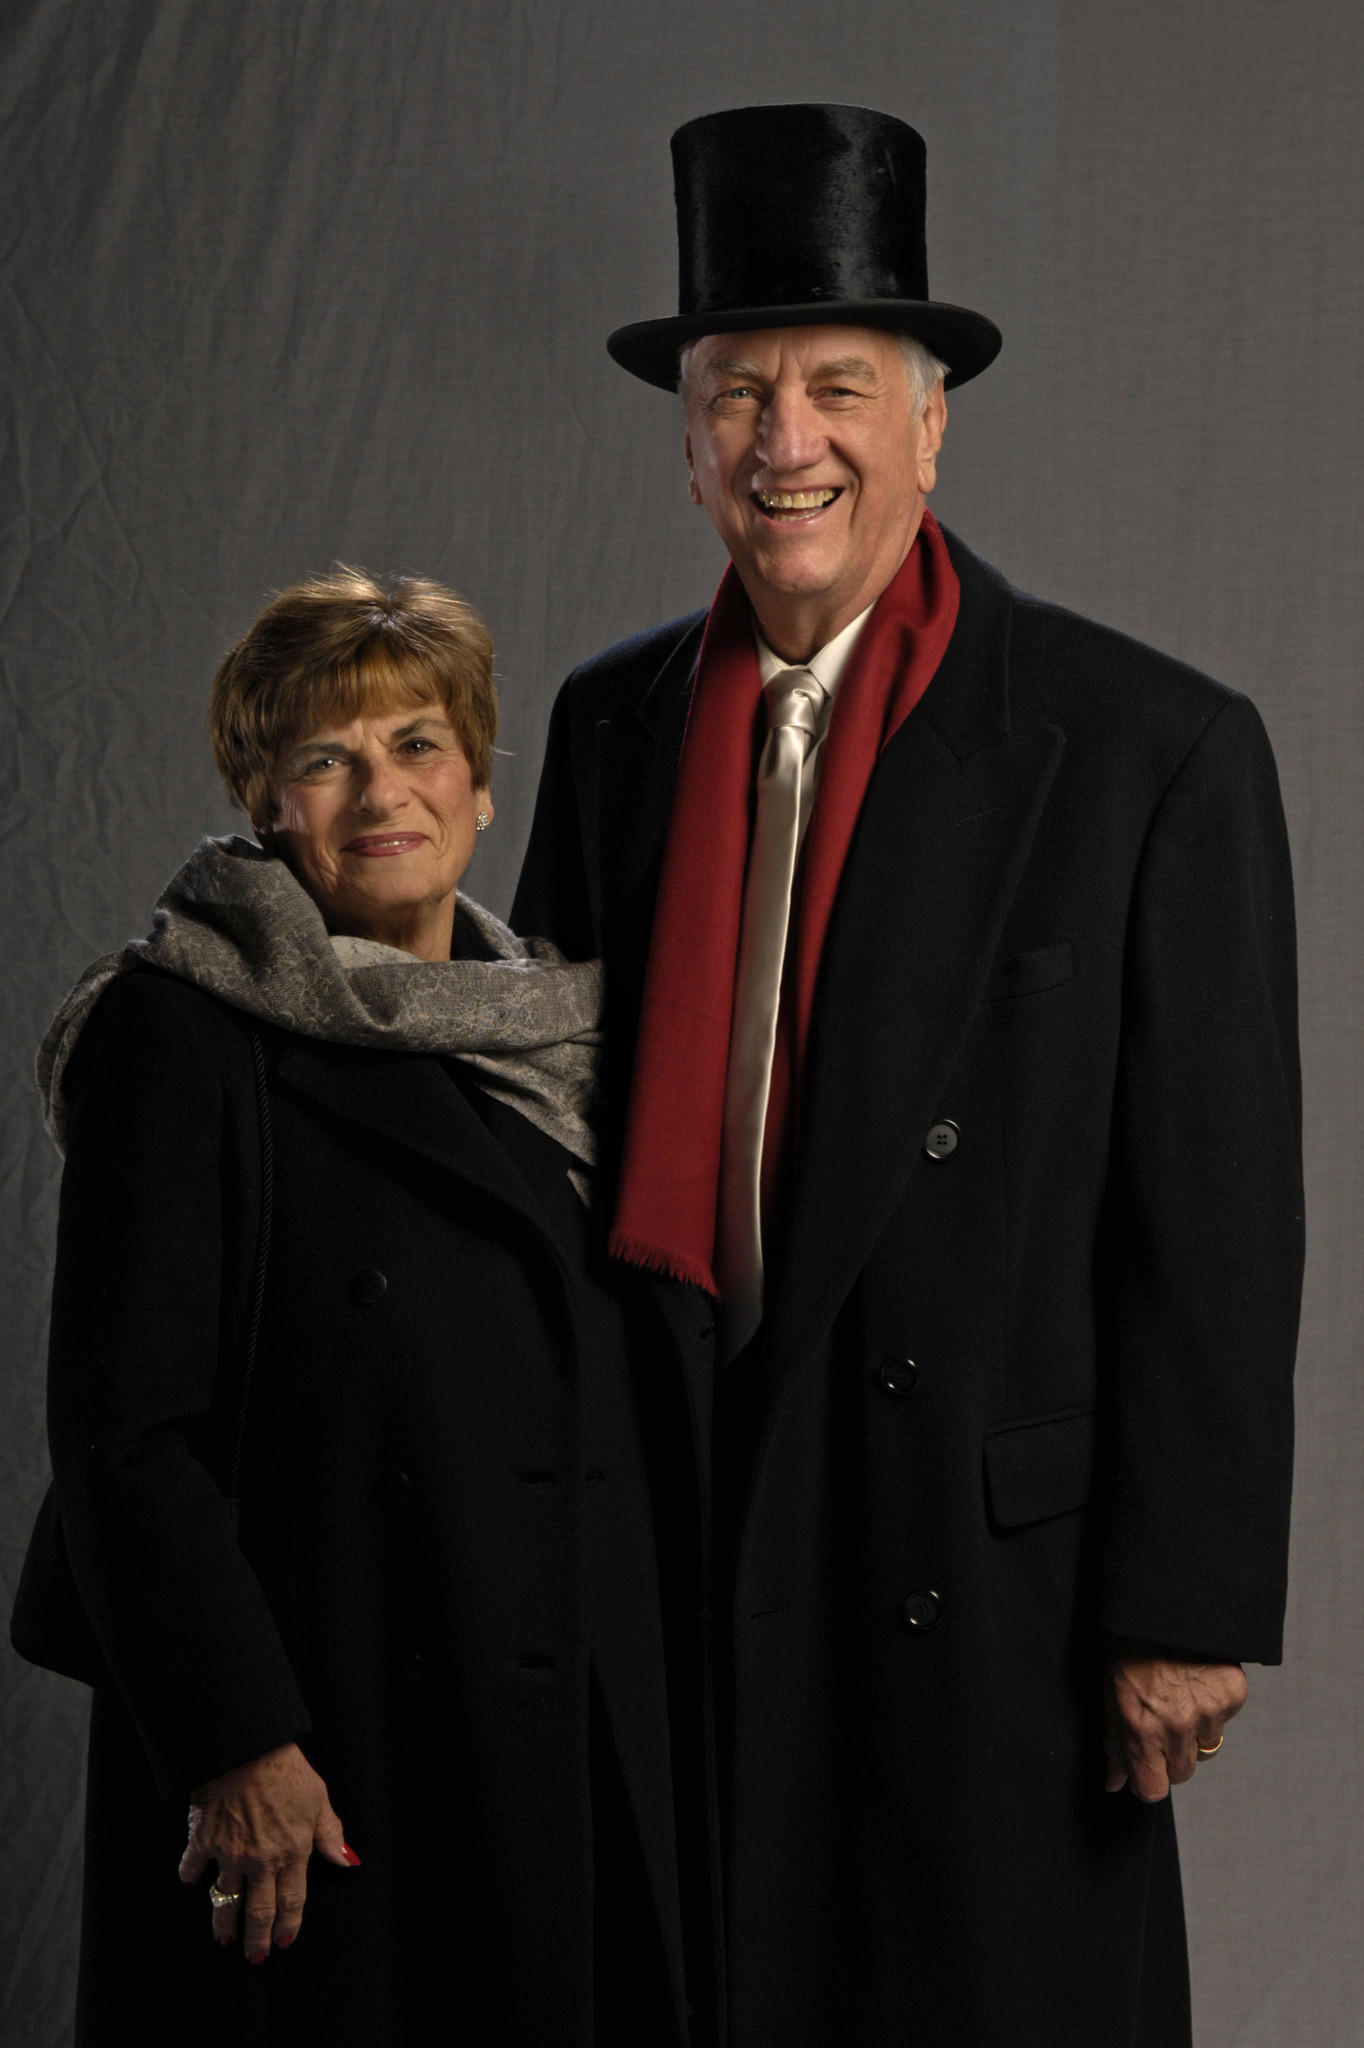 State Rep. Larry Miller and his wife, Millie, attend Gov. Rell's Inaugural Ball at the Connecticut Expo Center in January 2007.